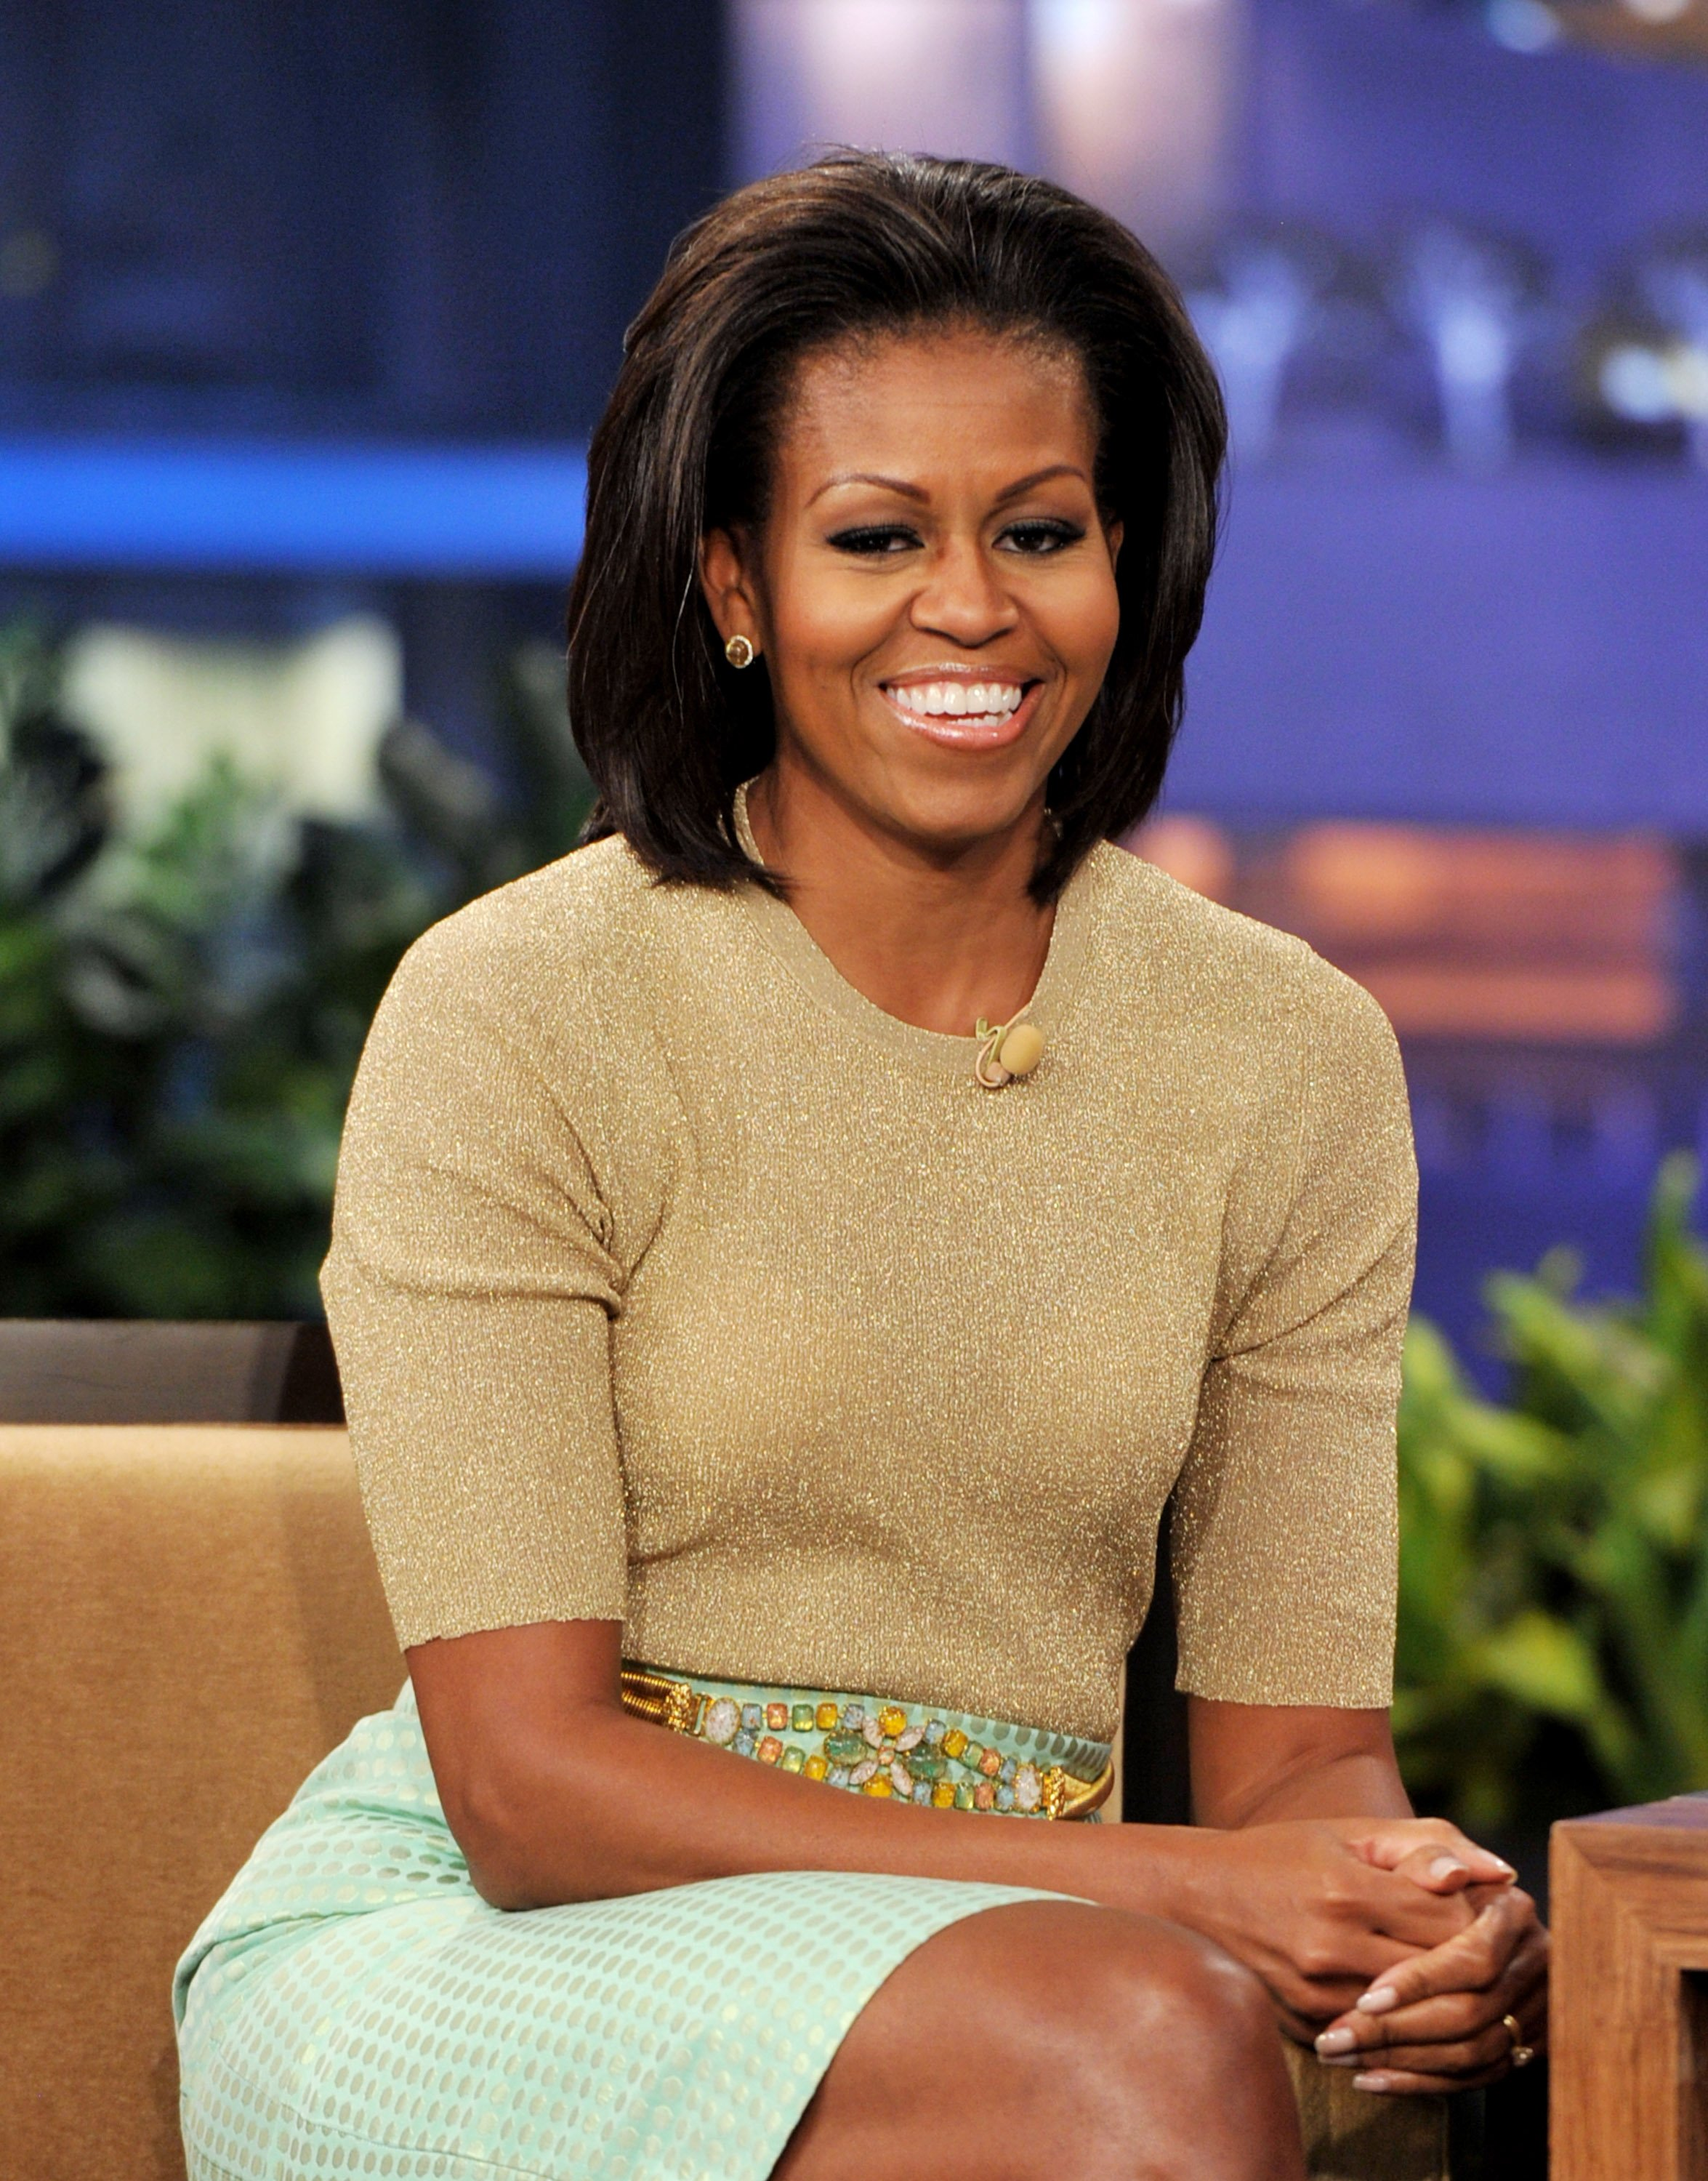 """Michelle Obama appearing on """"The Tonight Show with Jay Leno in January 2012. 